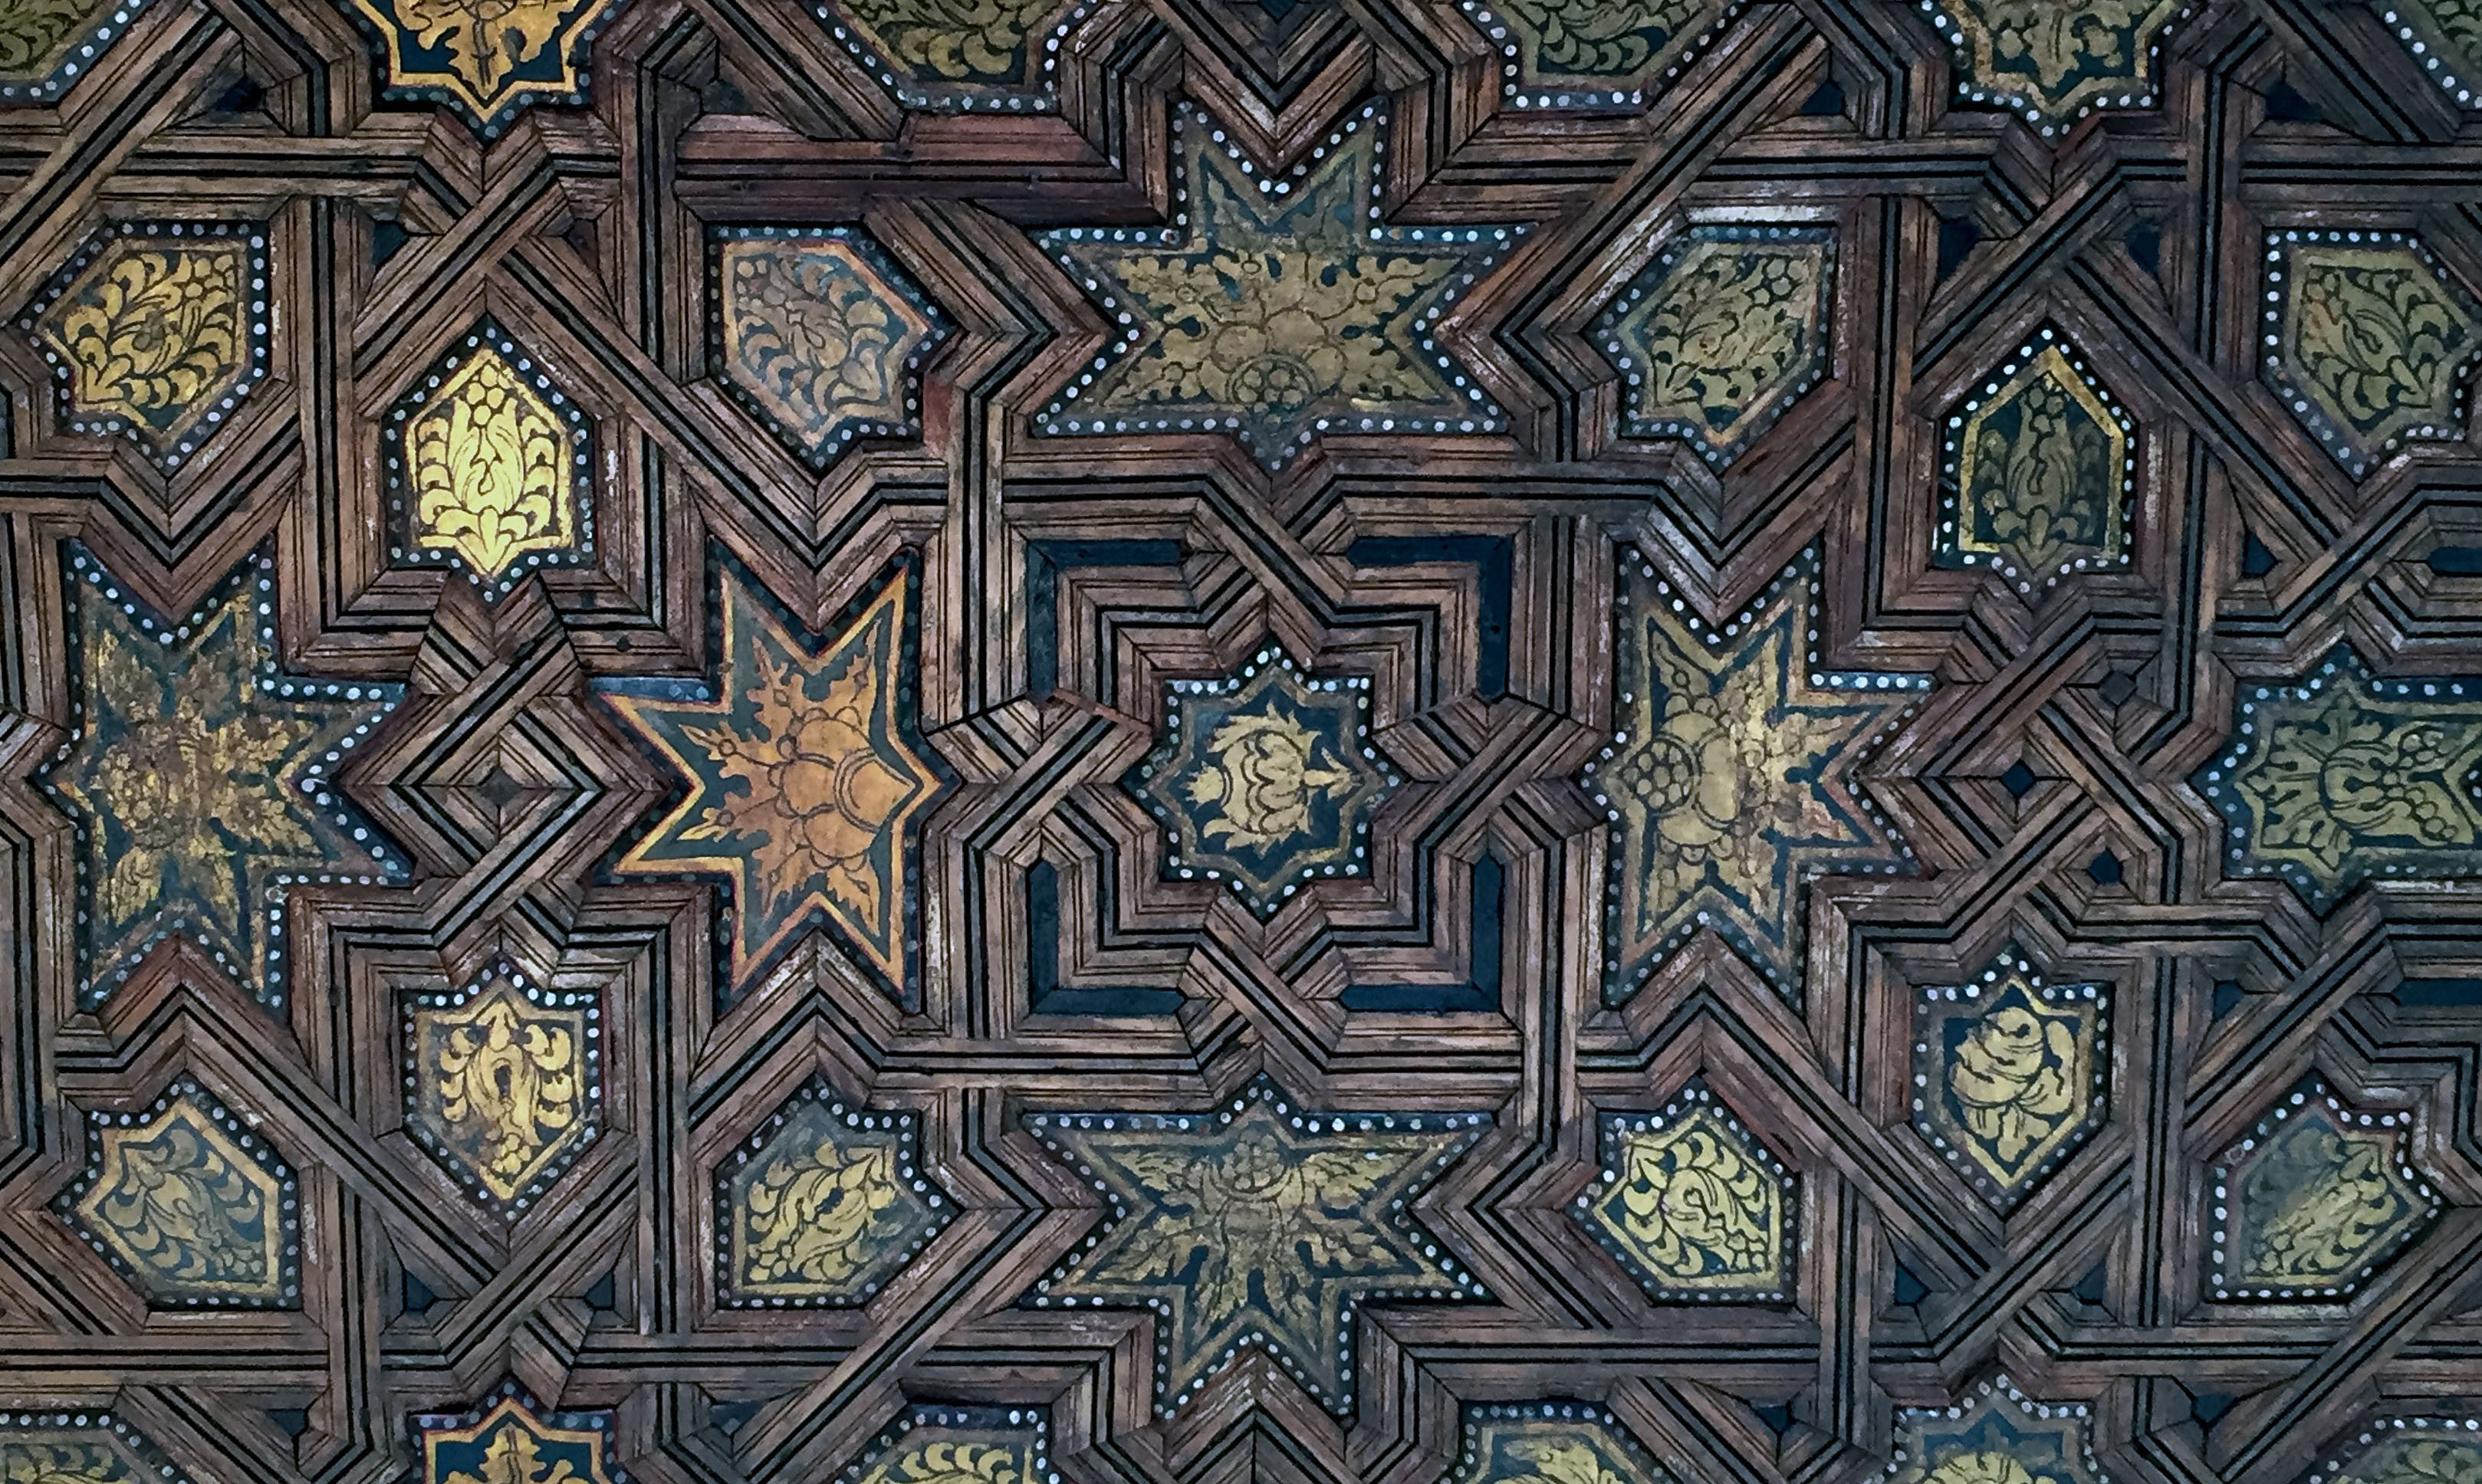 Intricate ceiling